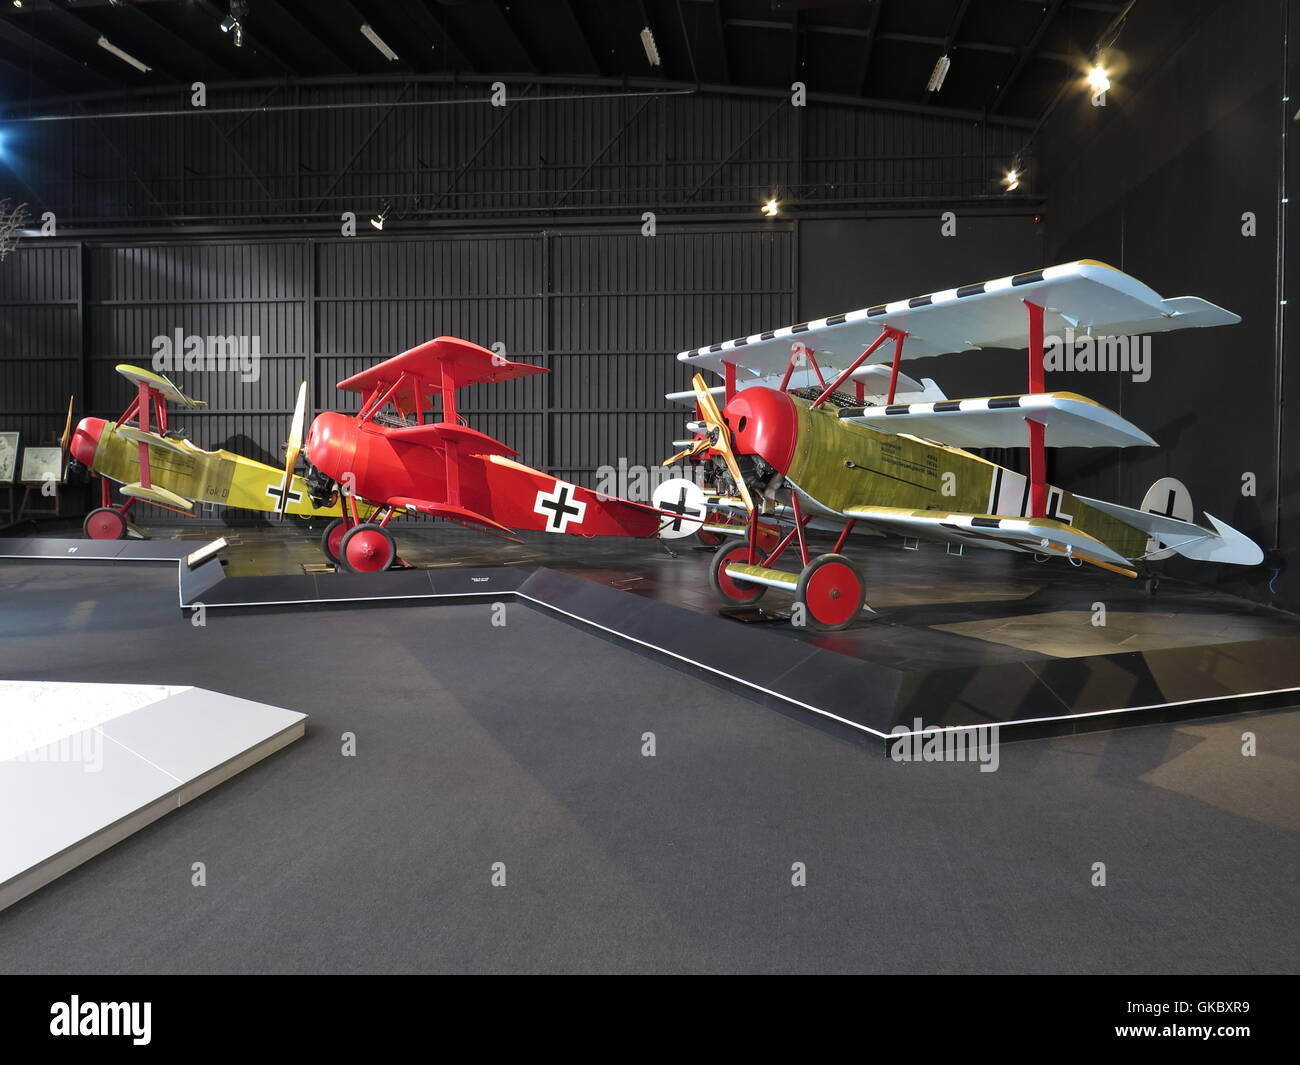 Omaka Aviation Heritage Centre at Blenheim, New Zealand. Showing a general view with the Red Barons triplane centre - Stock Image